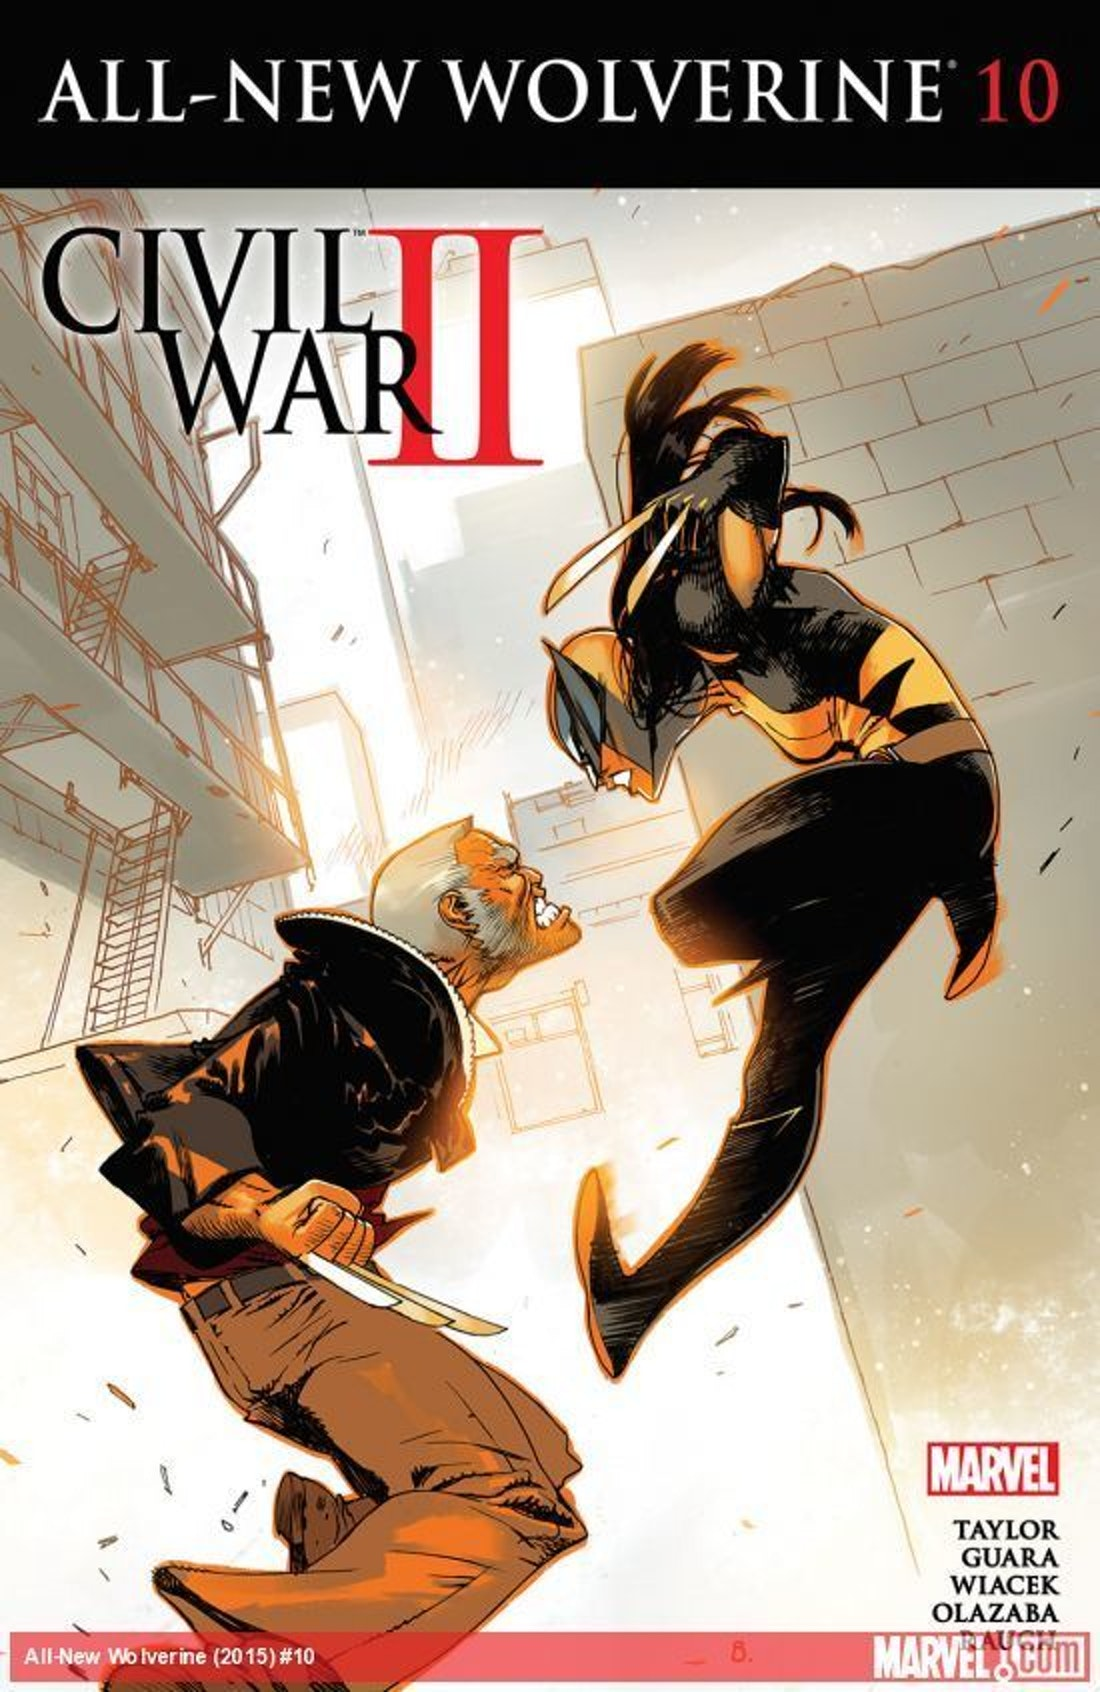 All-New Wolverine Issue 10 Old Man Logan X-23